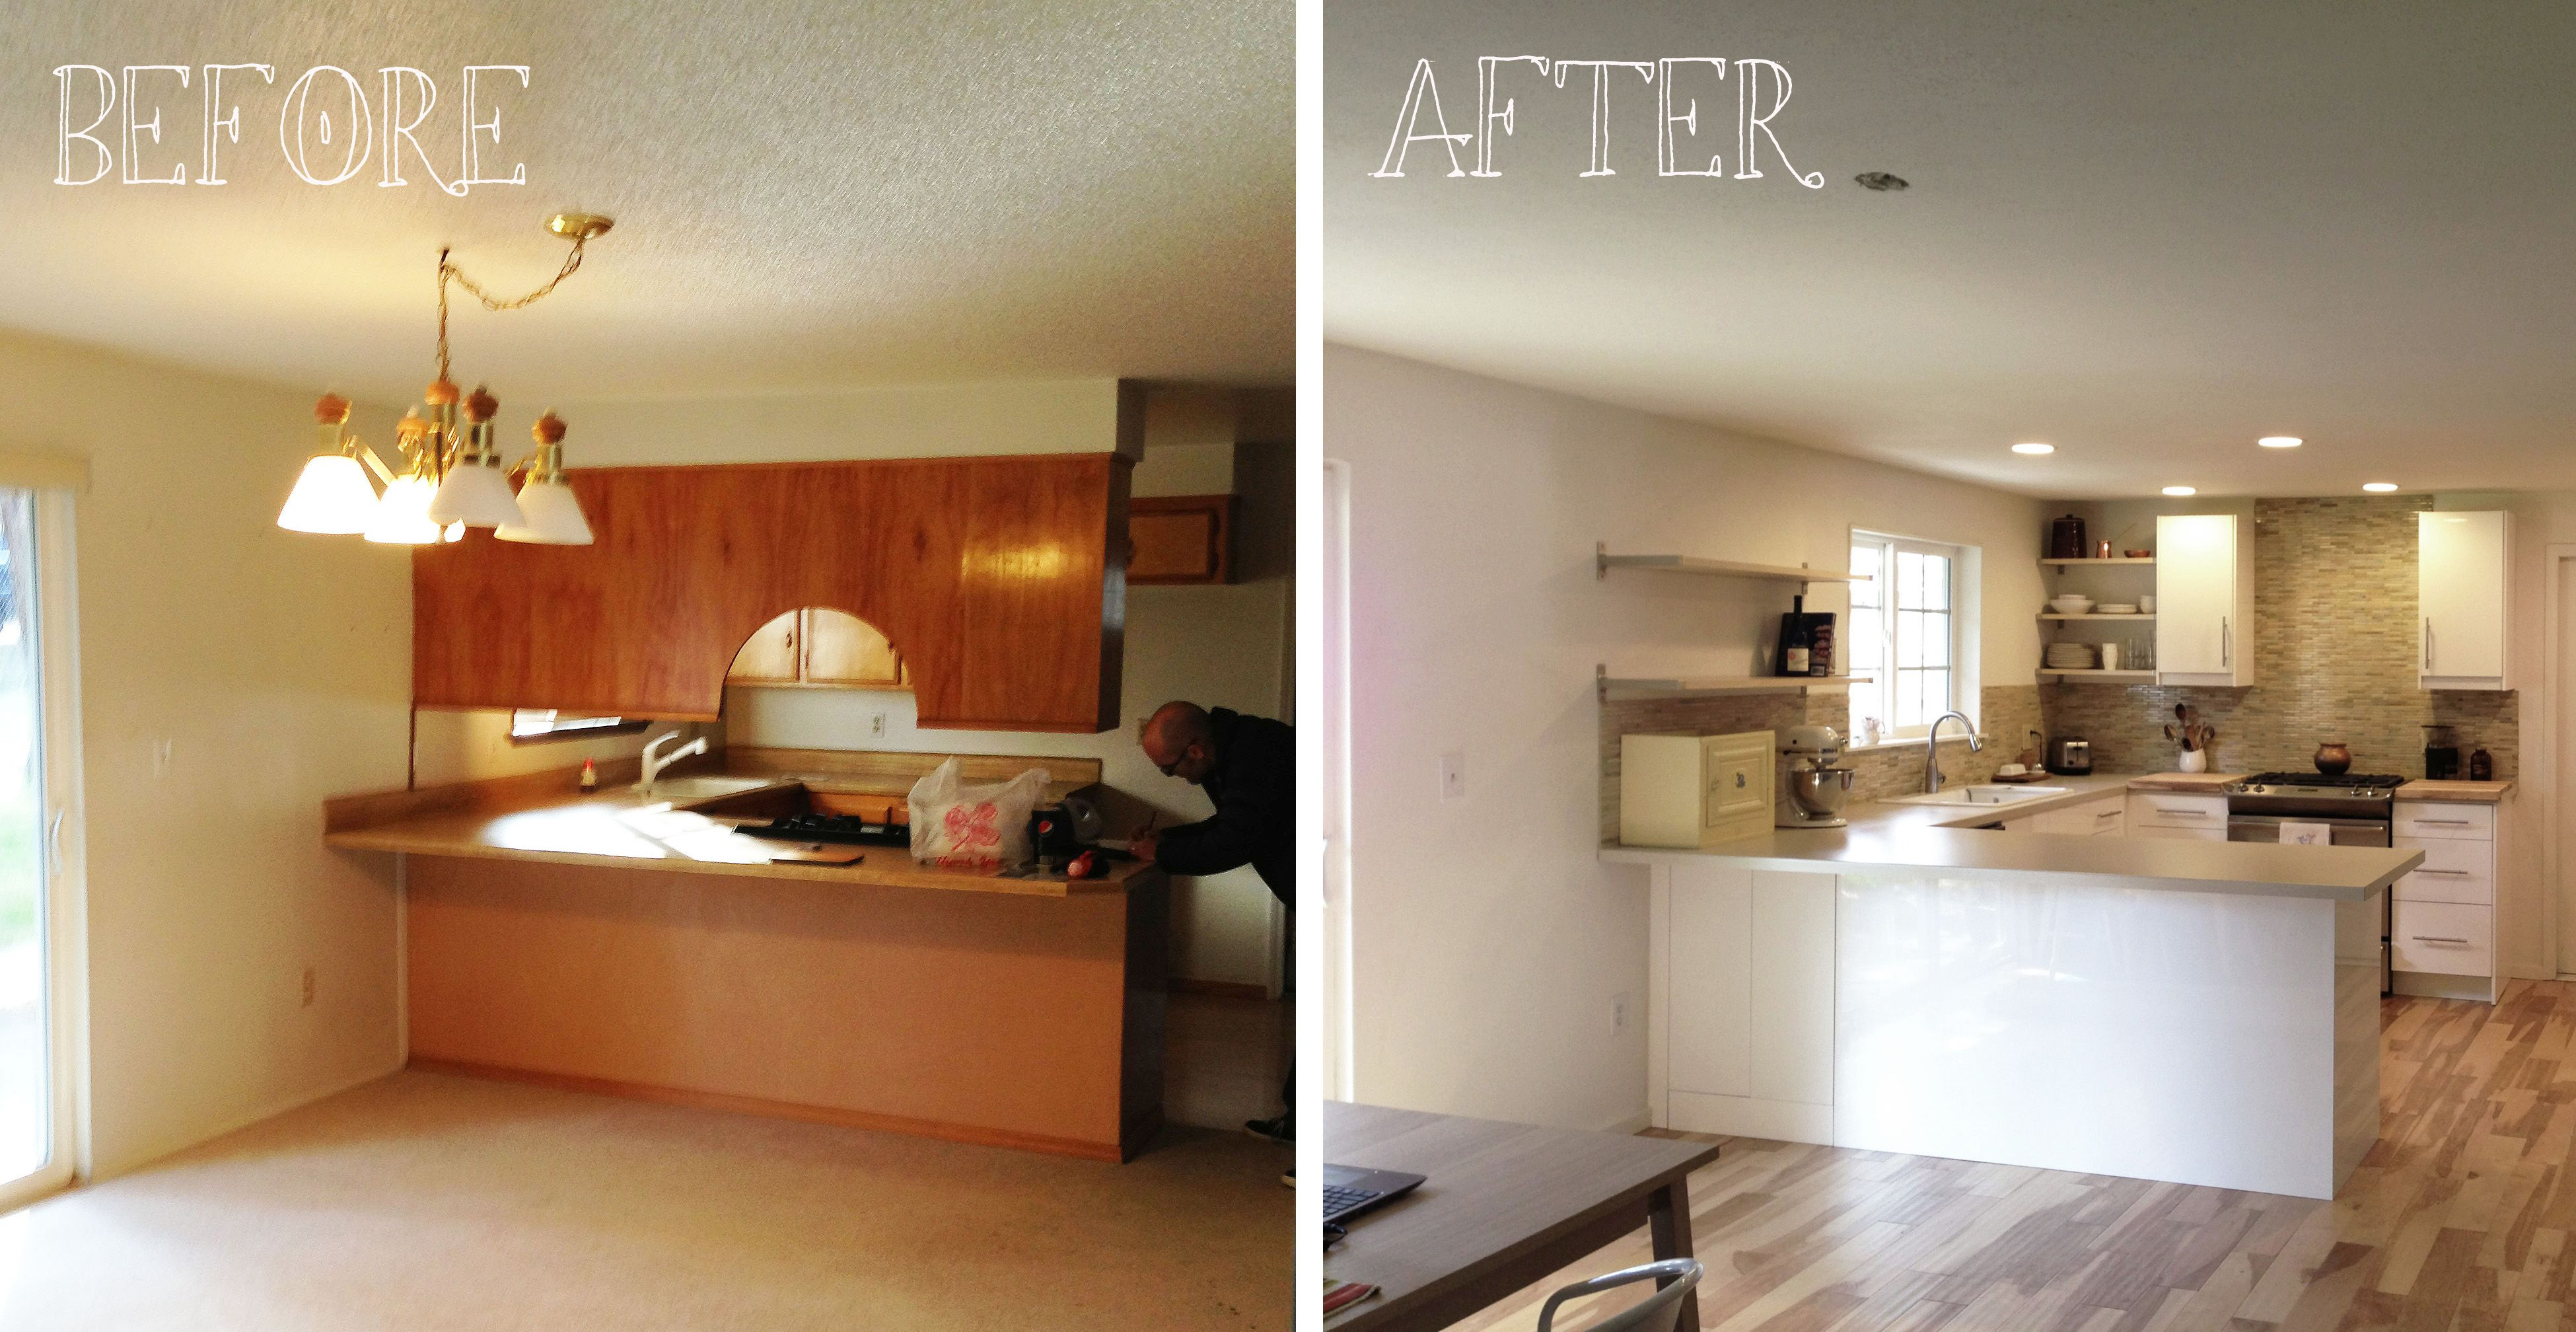 Representation Of Small Kitchen Remodel Before And After For - Kitchen before and after remodels